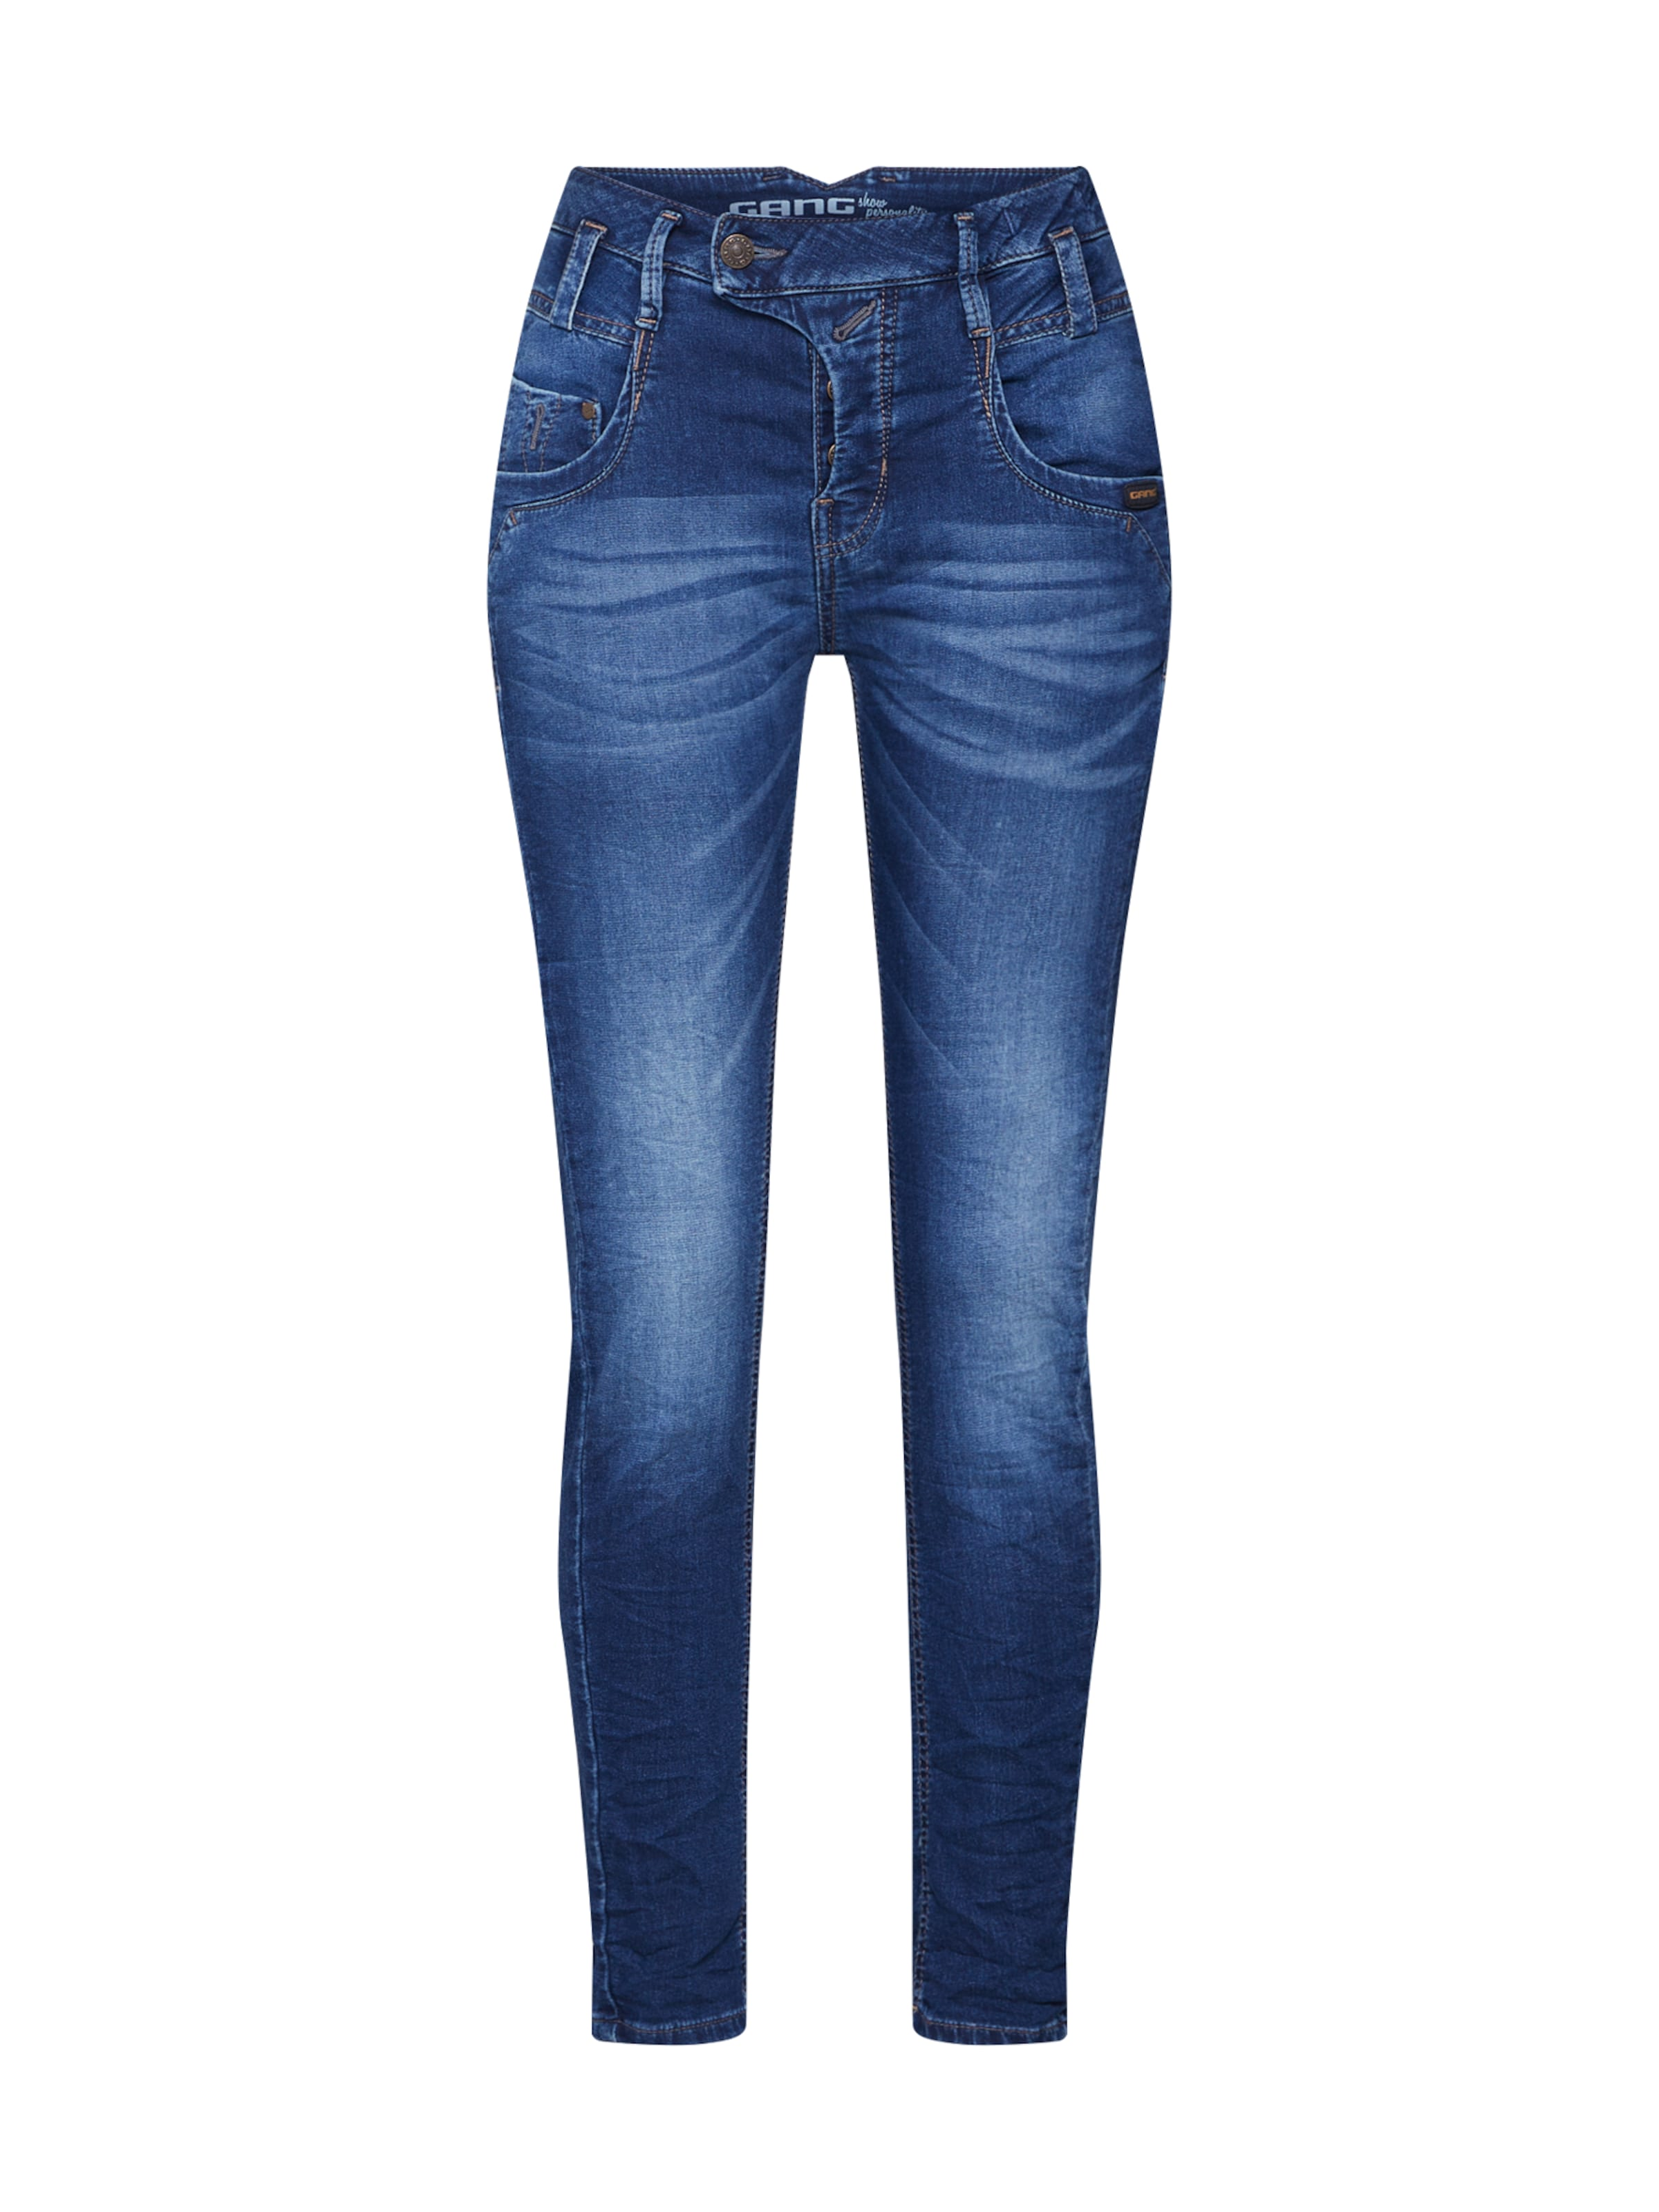 In Blue 'marge' Denim Gang Jeans F1TlKJc3